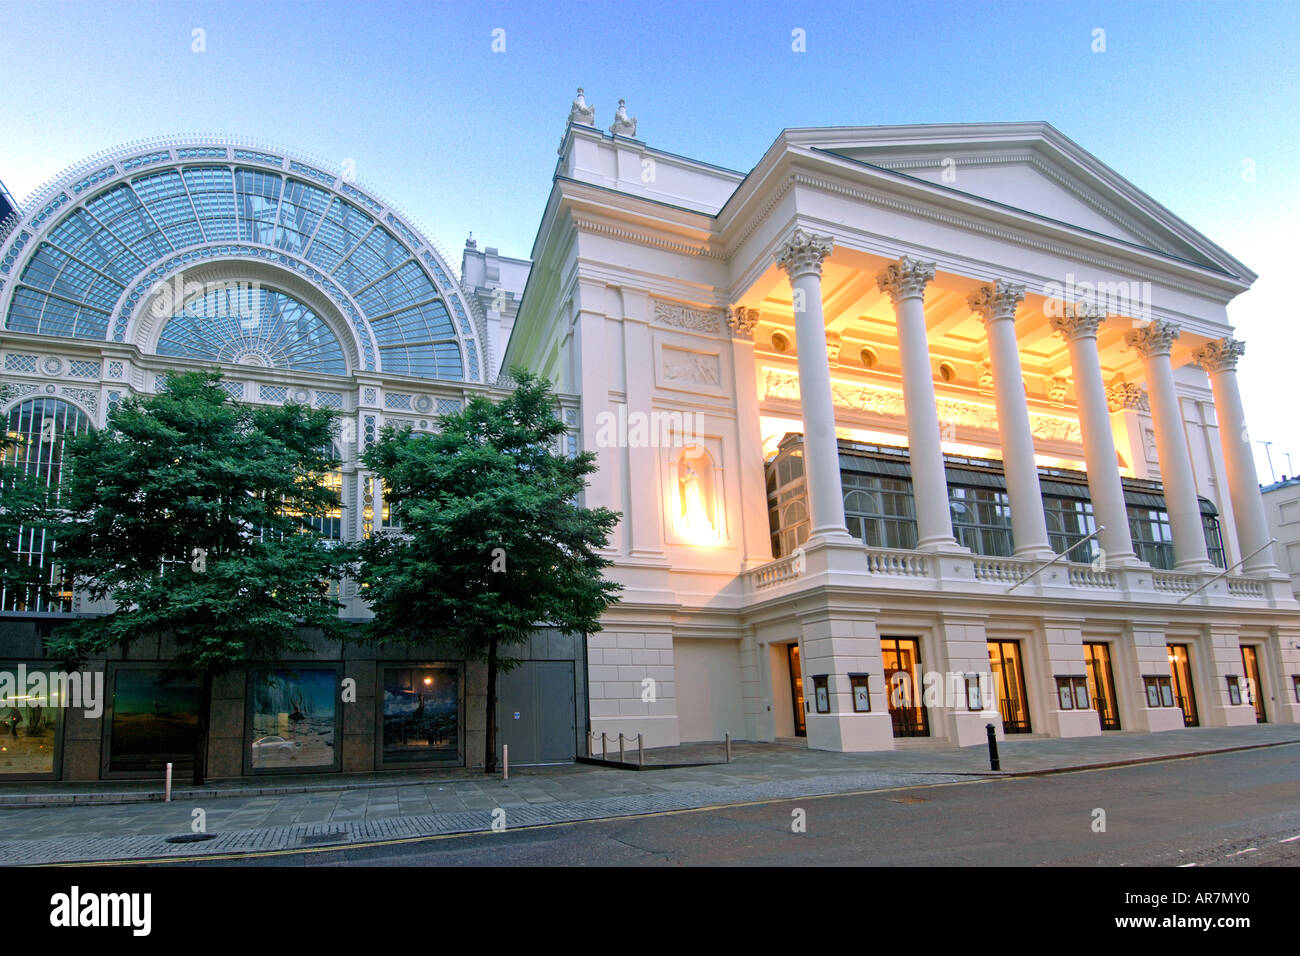 London 39 s royal opera house in covent garden at dawn stock photo royalty free image 9123503 alamy for Royal opera house covent garden